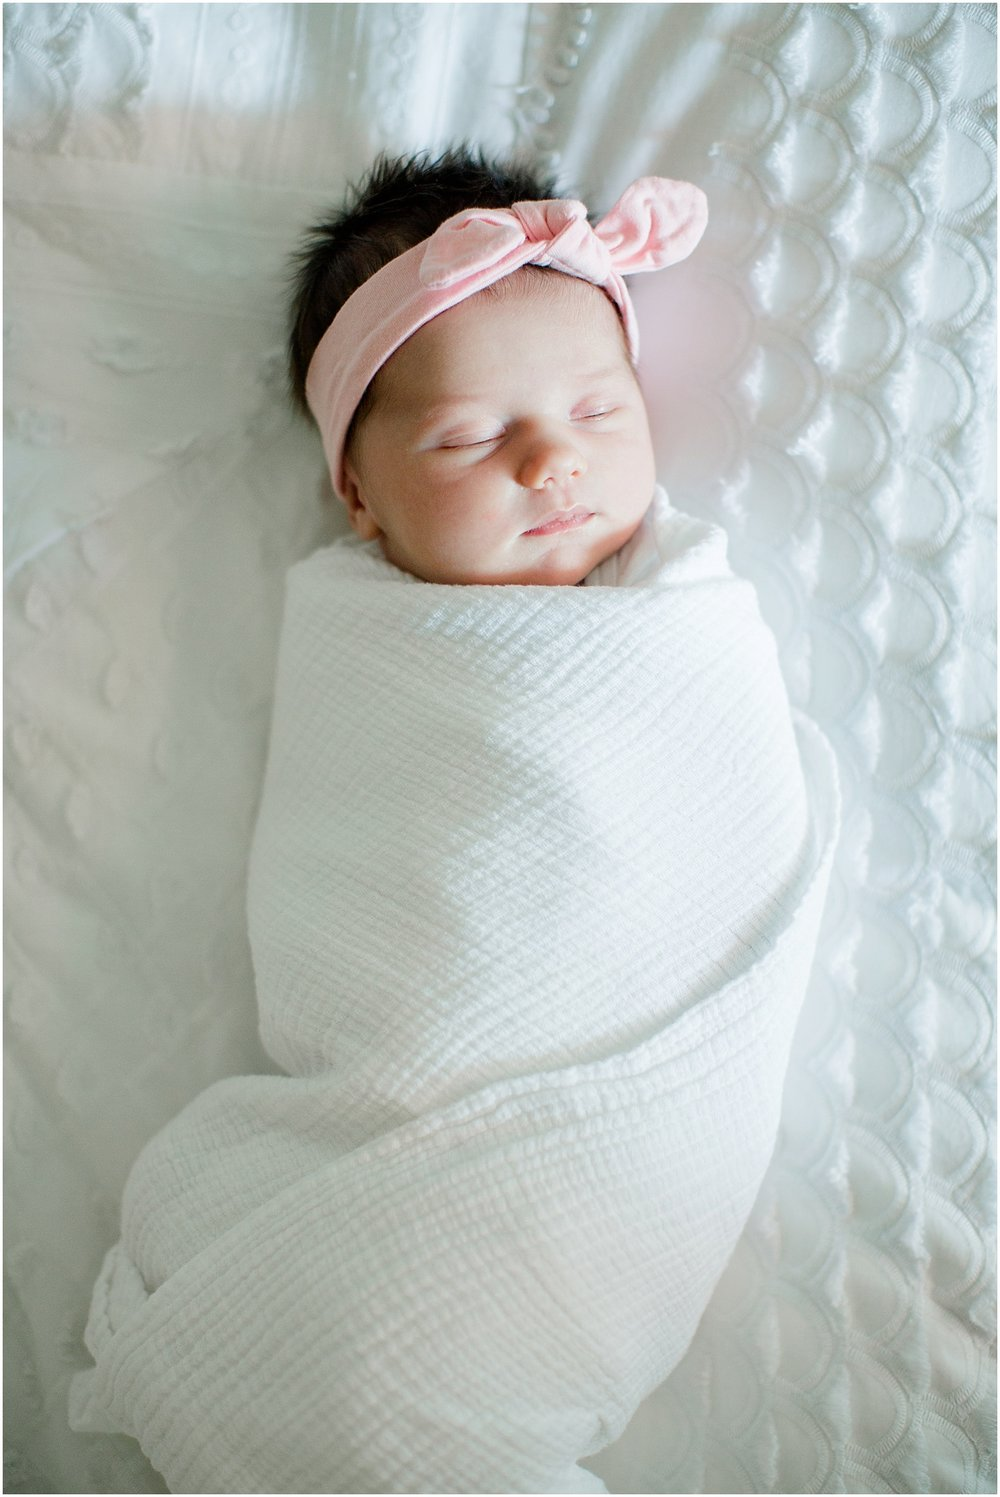 Ashley Powell Photography | Nora Newborn Session_0005.jpg